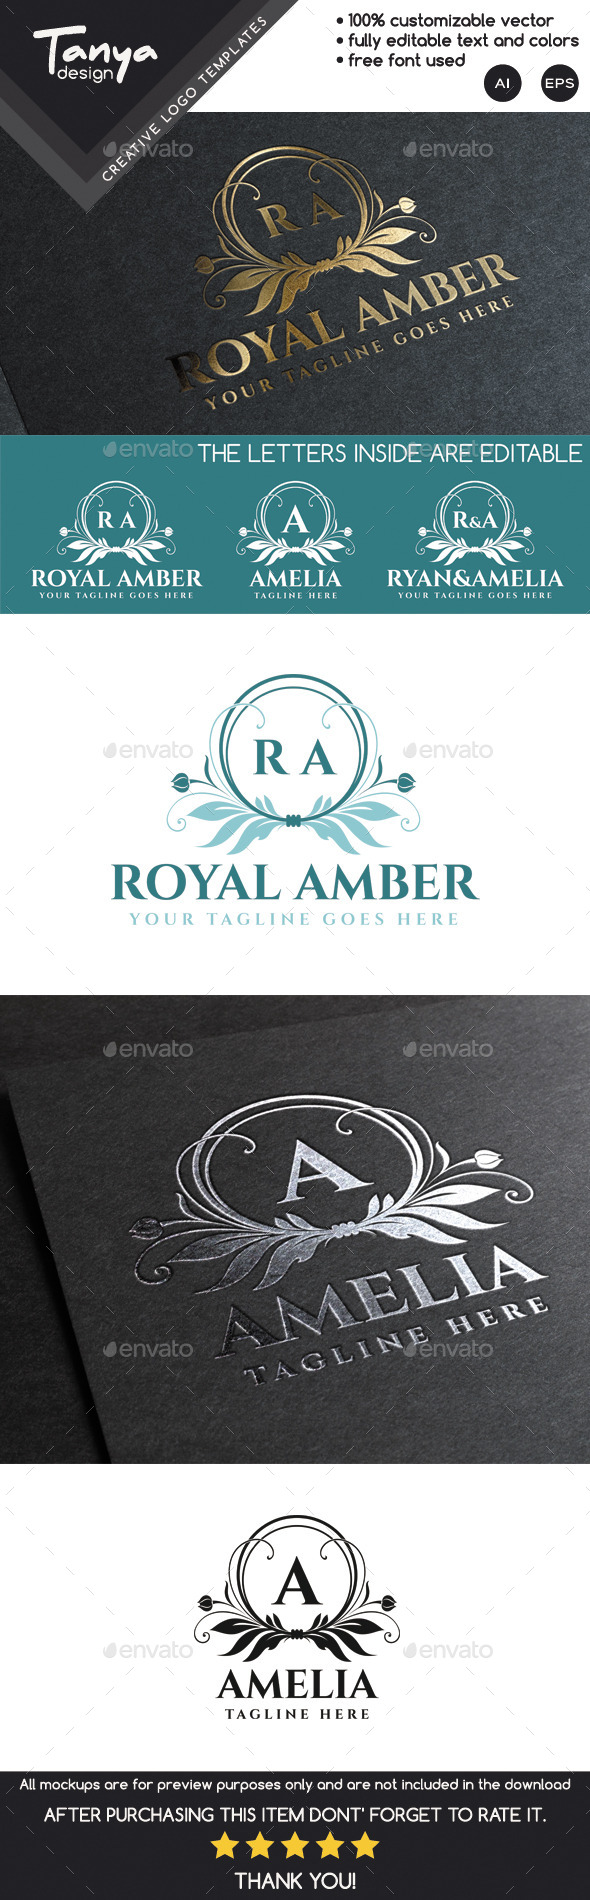 Royal Amber Logo Template - Crests Logo Templates